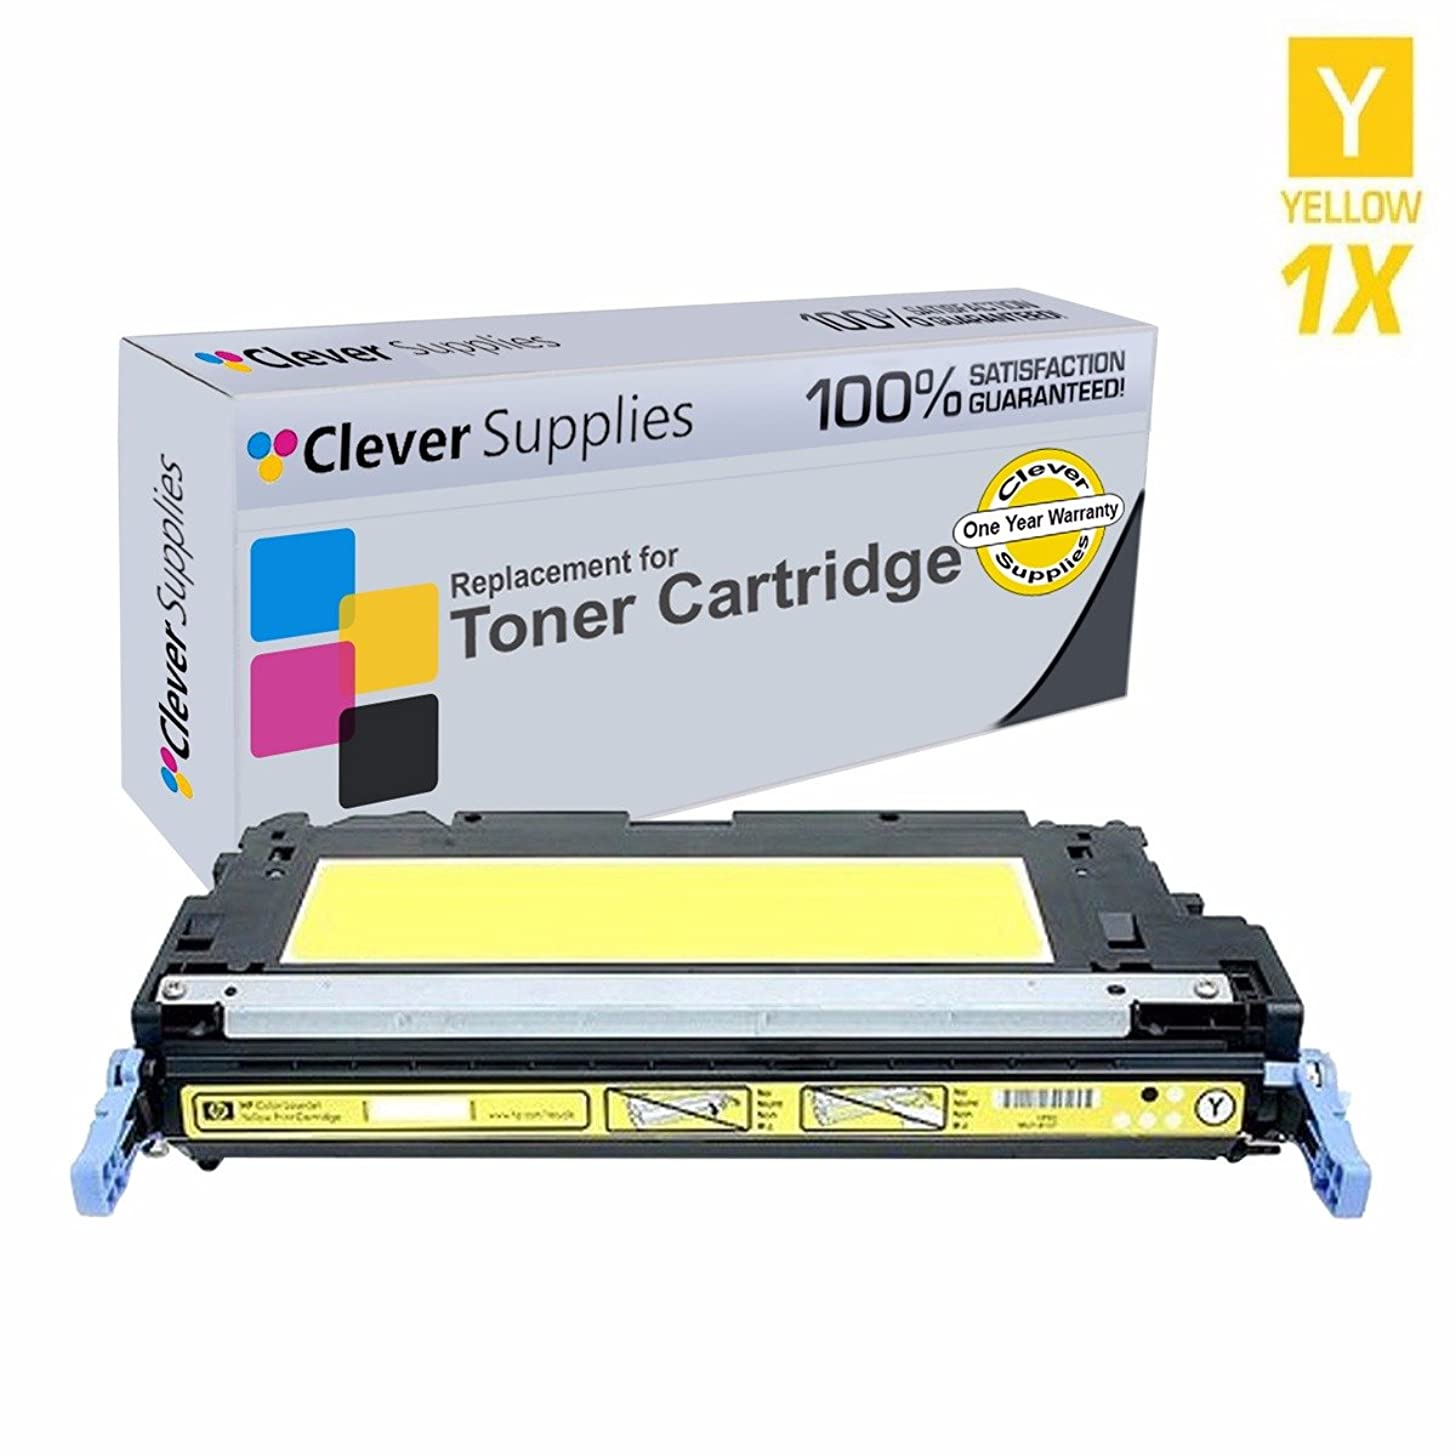 CS Compatible Toner Cartridge Replacement for HP CP3505n Q7582A Yellow HP 503A Color Laserjet 3600n 3600dn 3800n 3800dn 3800dtn CP3505 CP3505n CP3505dn CP3505x